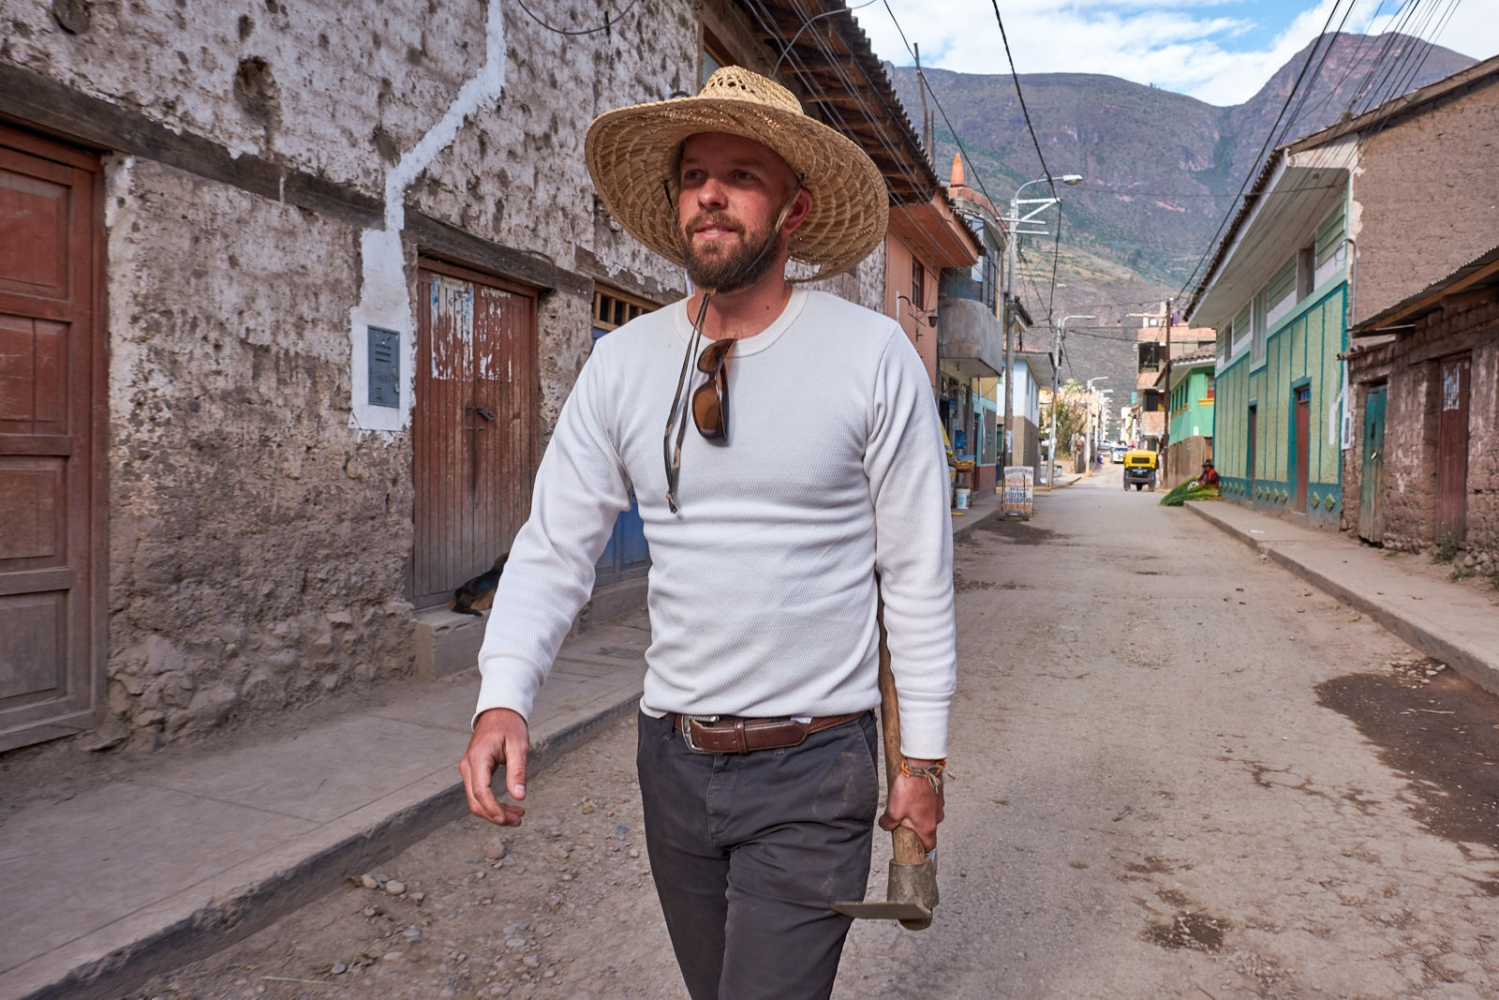 Aaron Ebner, co-founder of the Andes Alliance for Sustainable Development, walking from downtown Calca into the hills above the town where he maintains an organic garden plot.